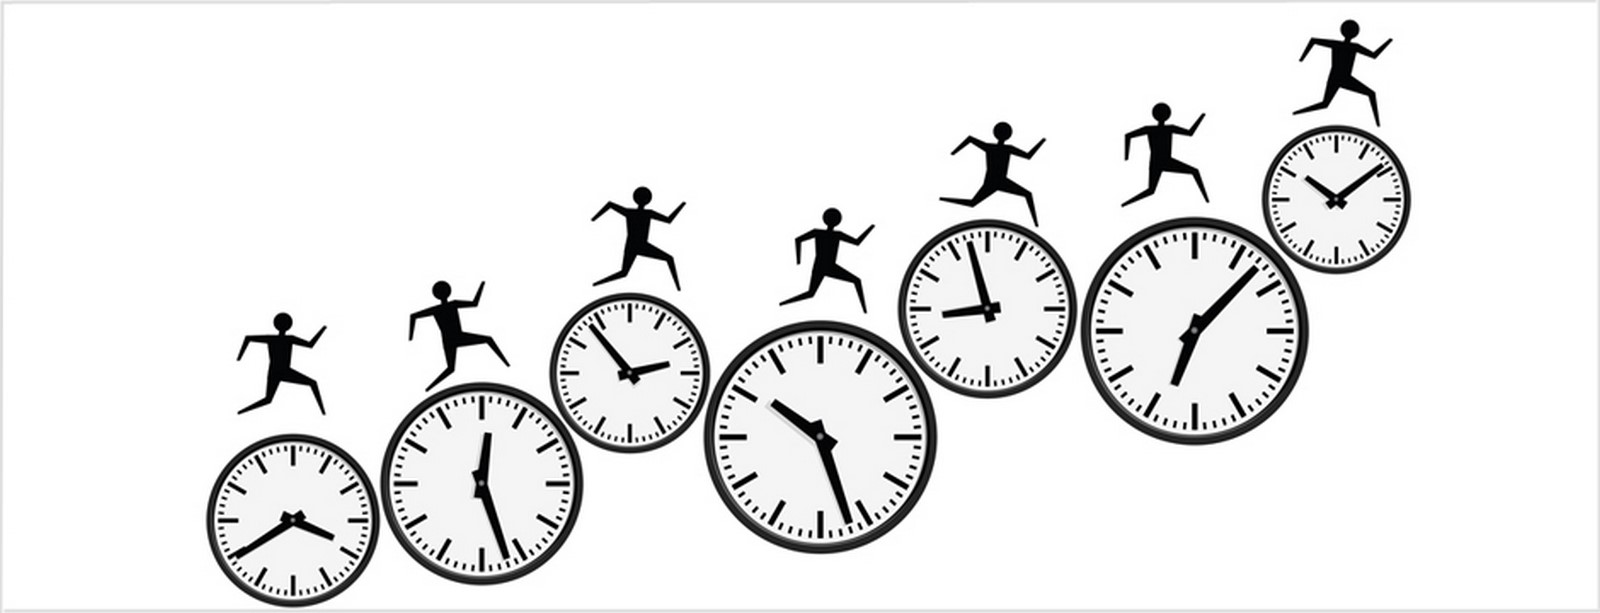 The irony behind late working hours in professional practice - Sheet1